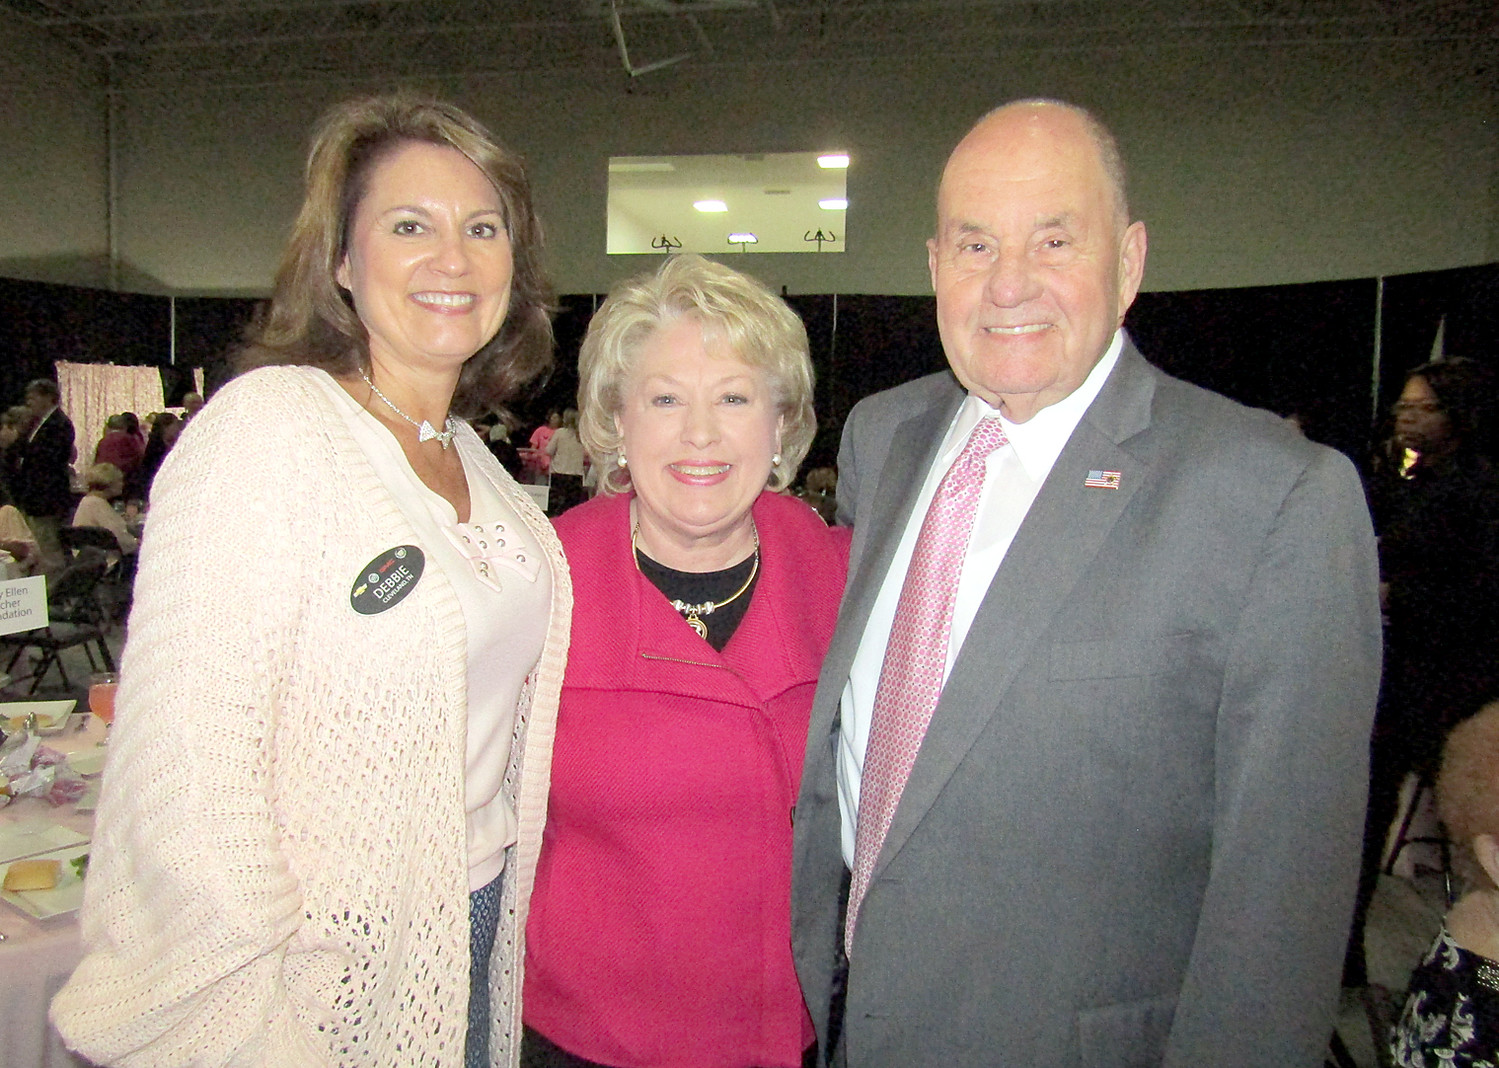 DEBBIE MELTON meets up with Sandra and Mayor Tom Rowland prior to the beginning of the Volley for a Cure luncheon.